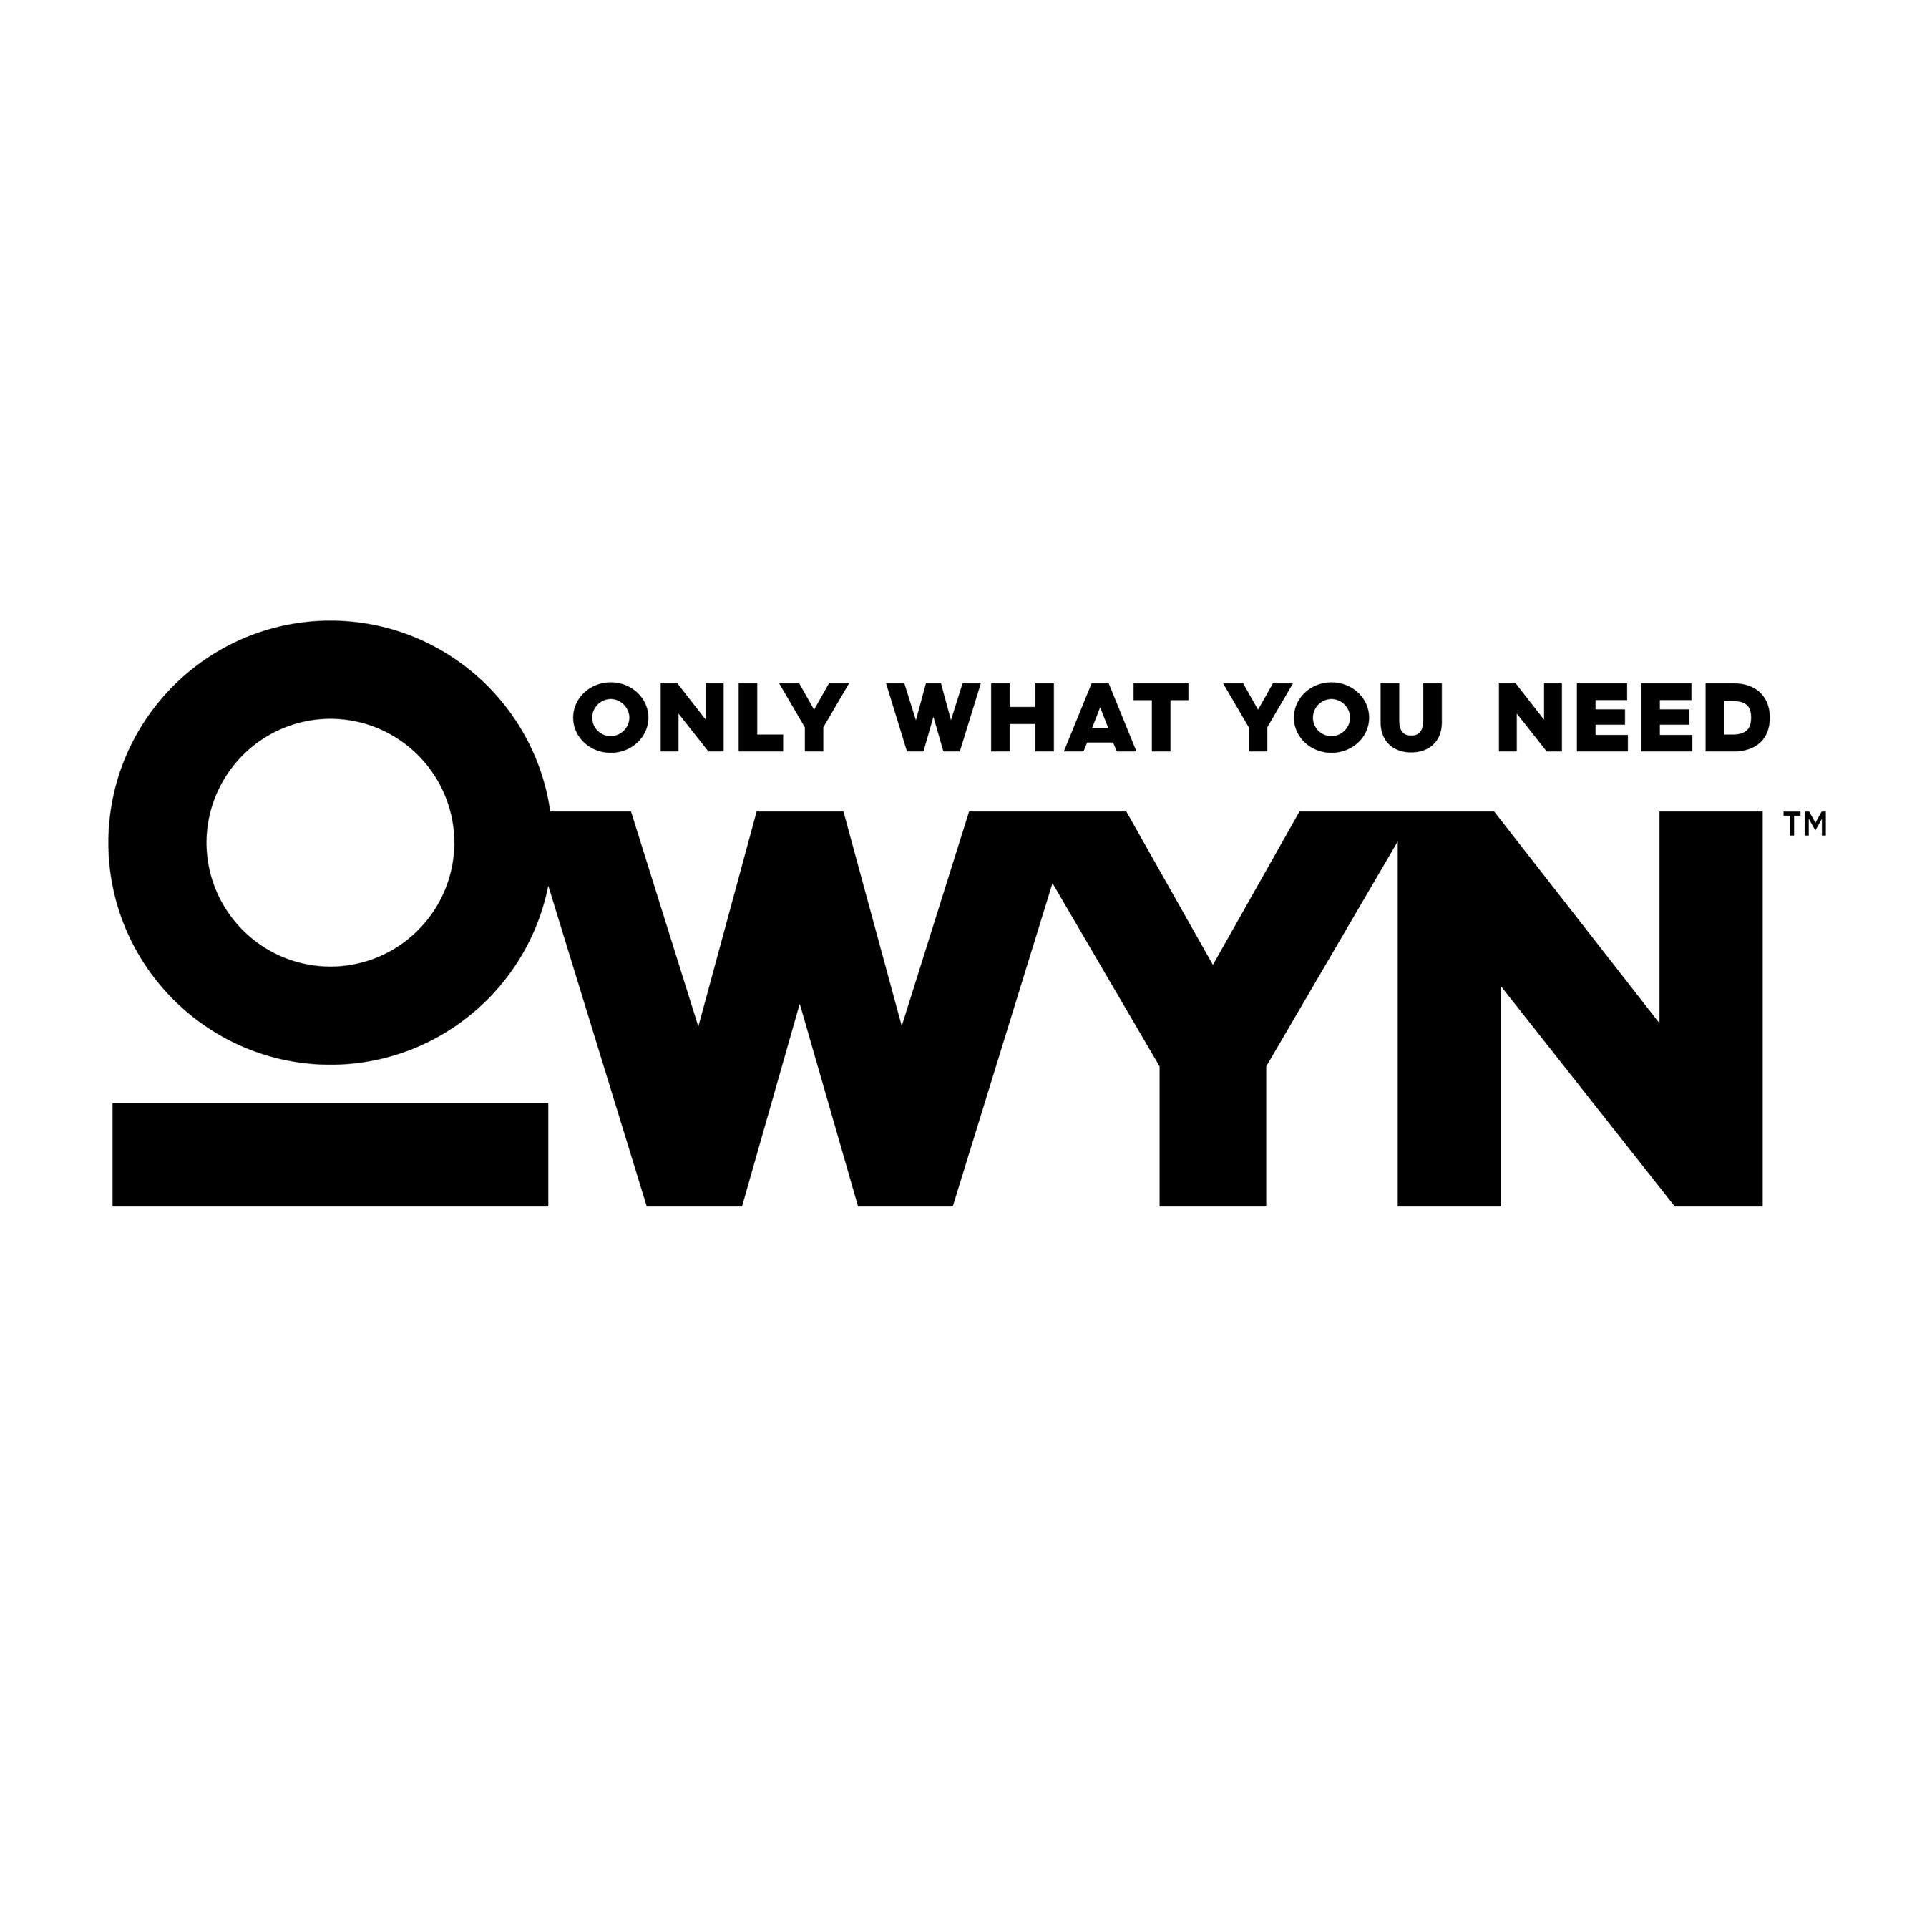 Live Owyn coupons and promo codes